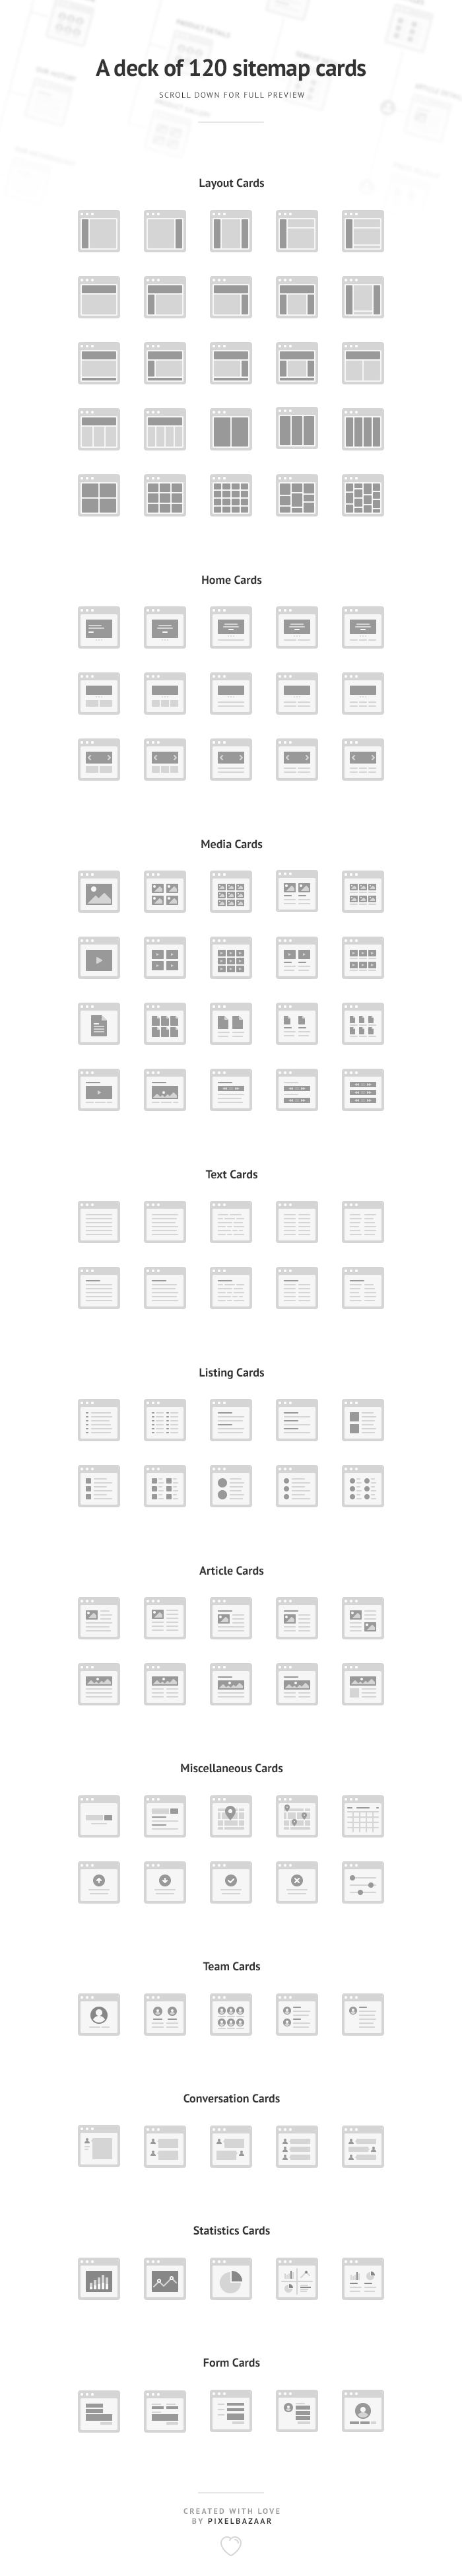 Purchase a deck of 120 sitemap cards created by Pixel Bazaar. Perfect for the visualization of user and website flow charts.